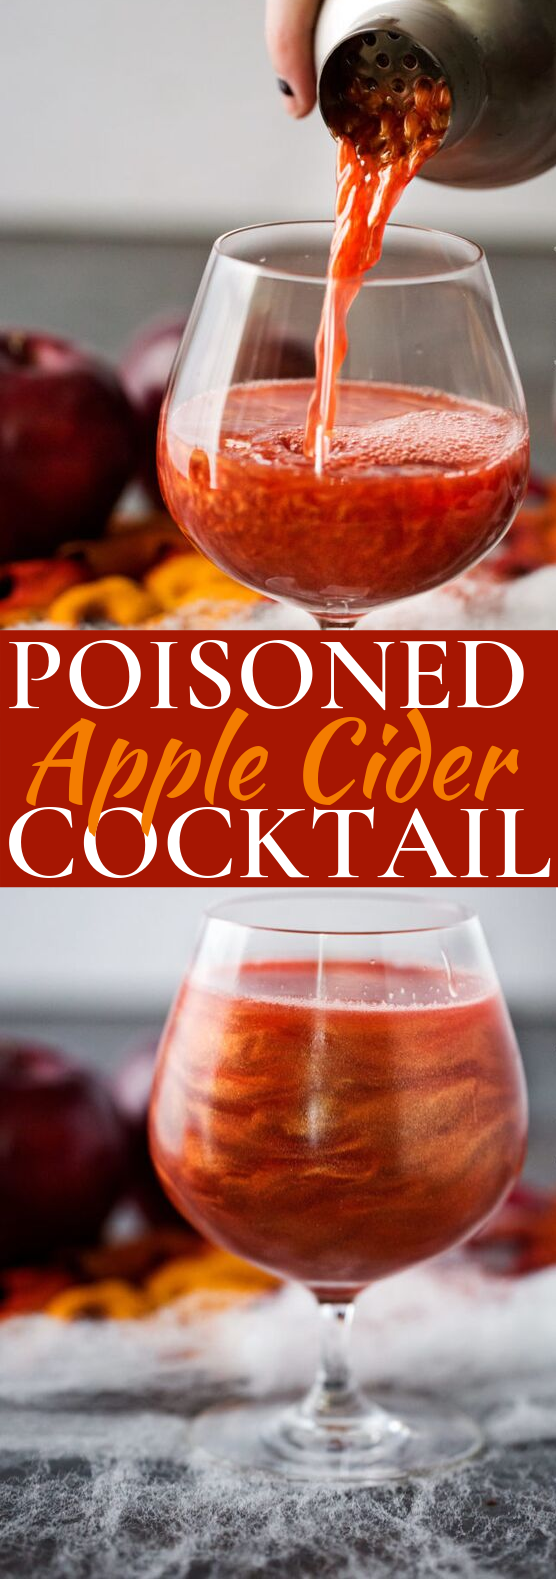 Poisoned Apple Cider Cocktail #drinks #cocktails